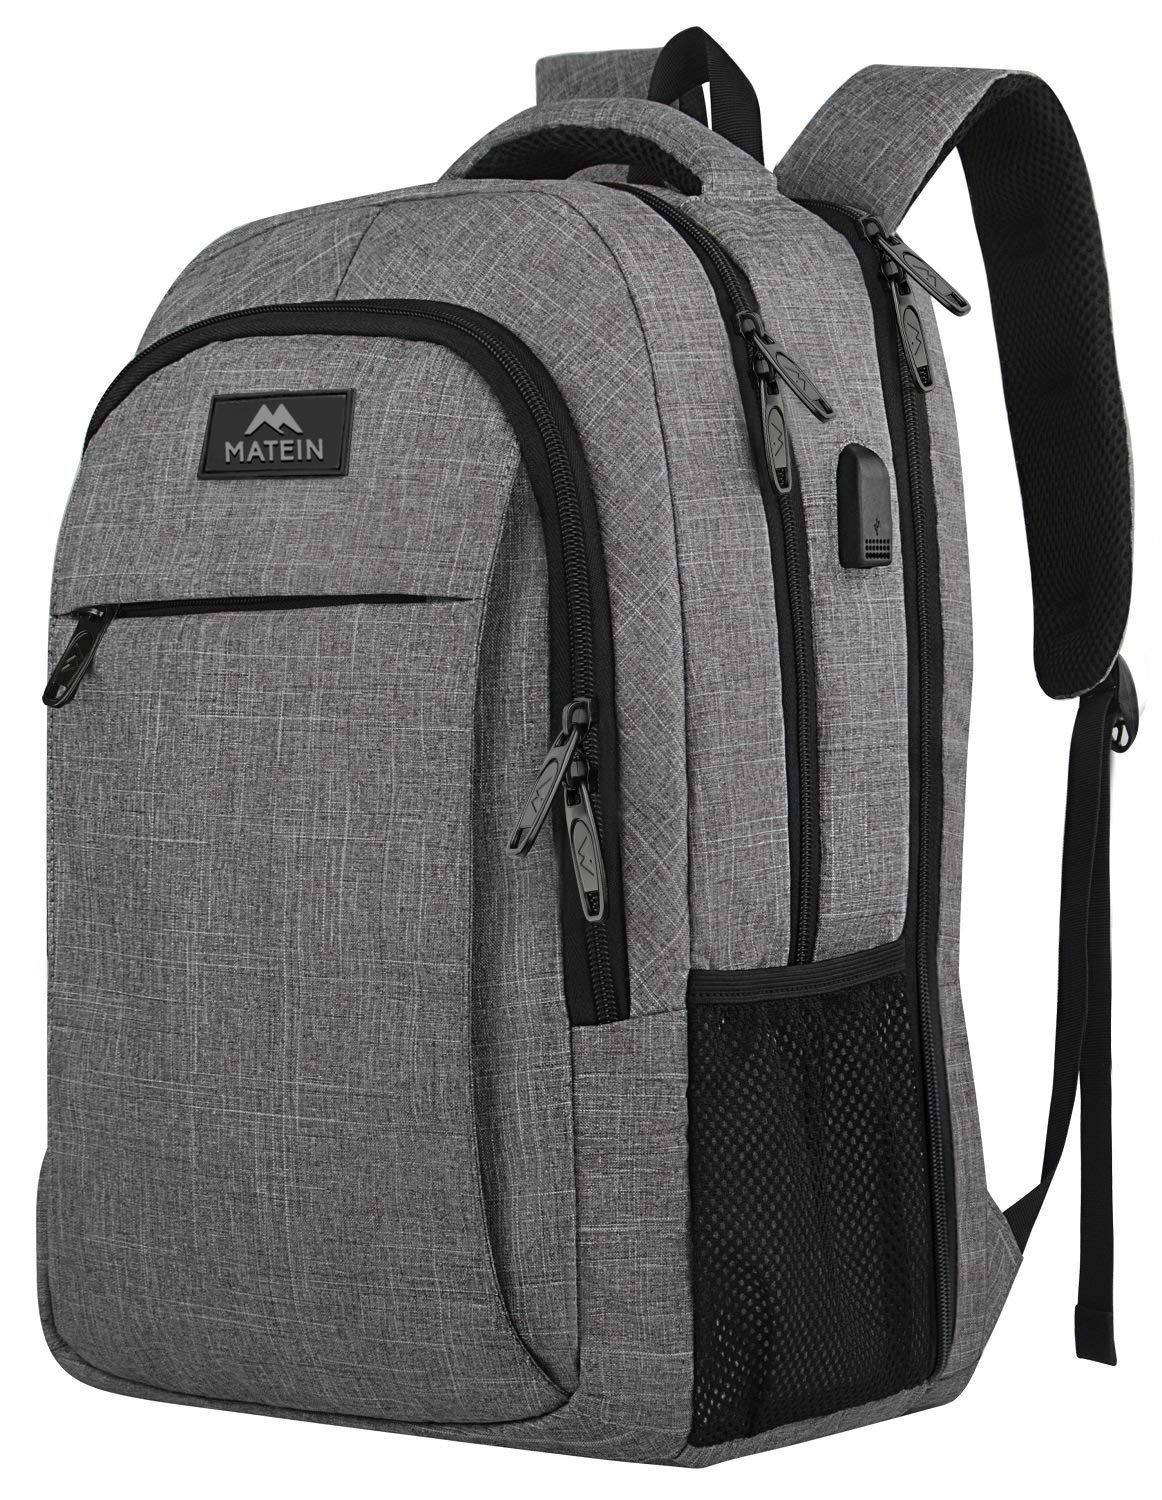 17 Inch Laptop Backpack, MATEIN TSA Large Backpack for Travel and Business with USB Charger Port, Water Resistant Big Flight Approved Weekender Carry-On Backpack with Luggage Sleeve for Women and Men by MATEIN (Image #1)